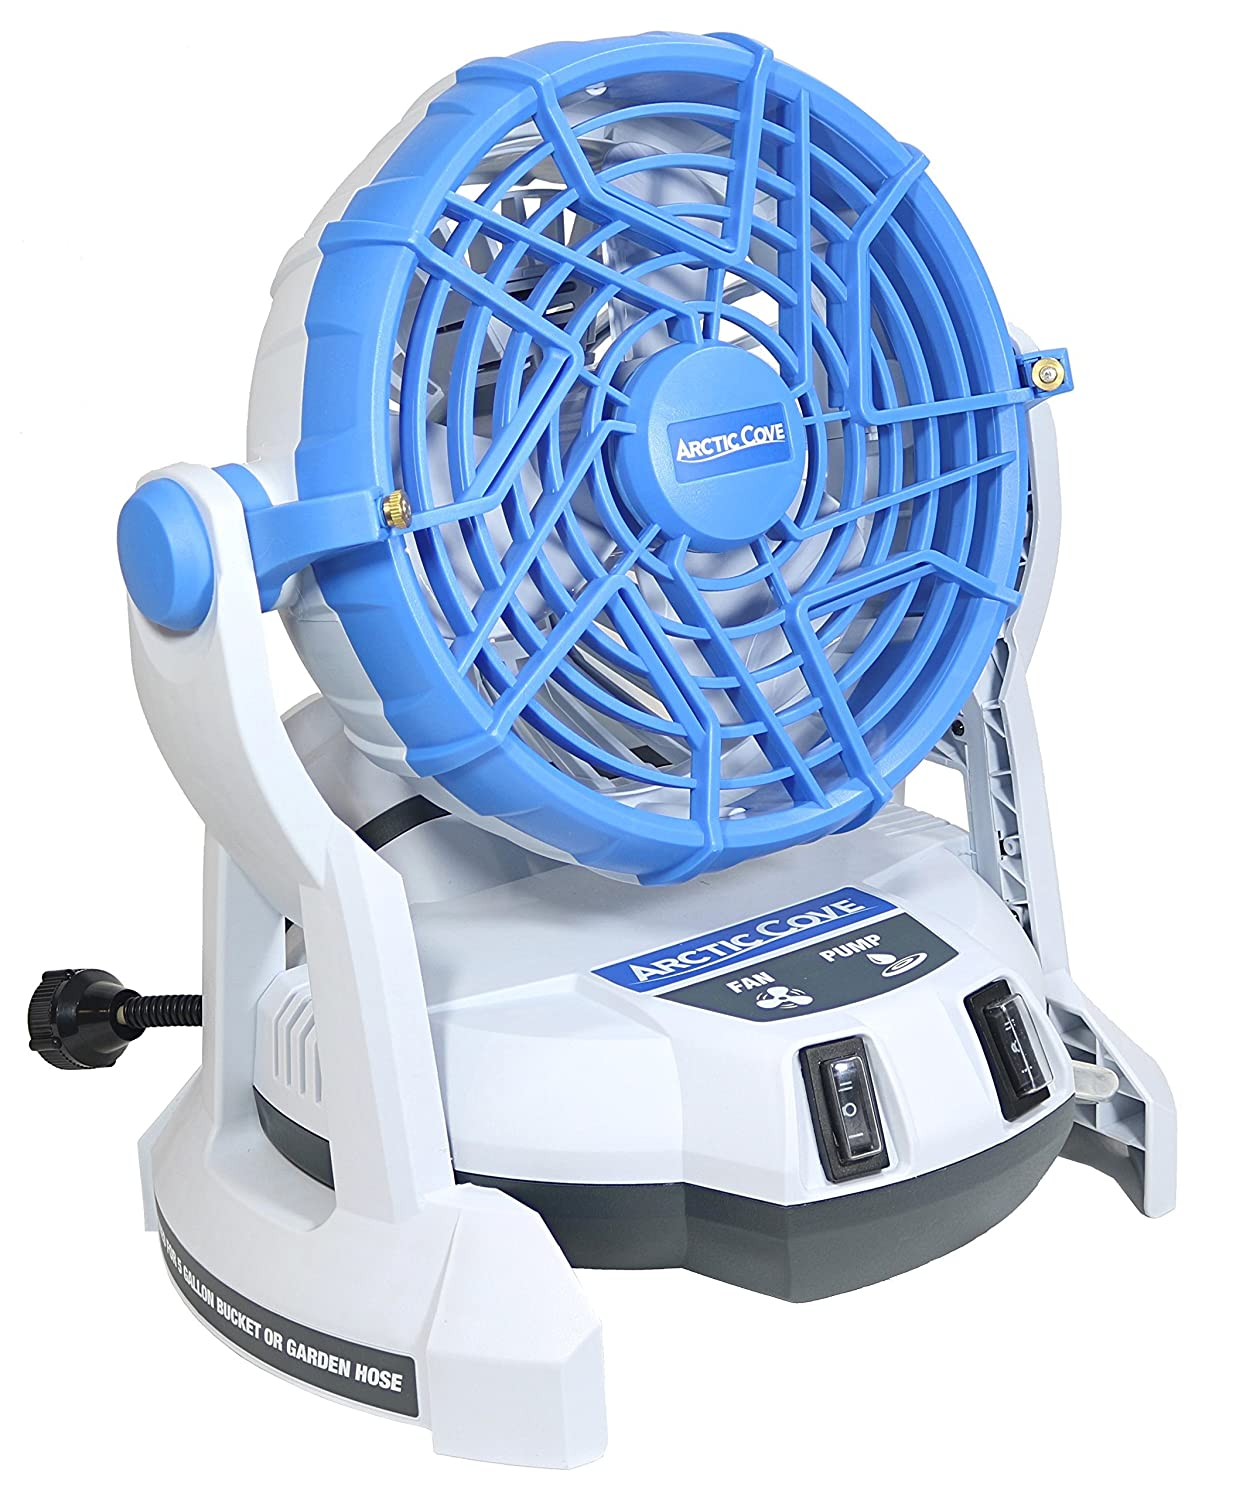 Arctic Cove MBF0181 18V Lithium Ion Powered Cooling Bucket Top Variable Speed Fan and Water Mister 18V Battery and Charger Included, 5 Gallon Bucket Not Included